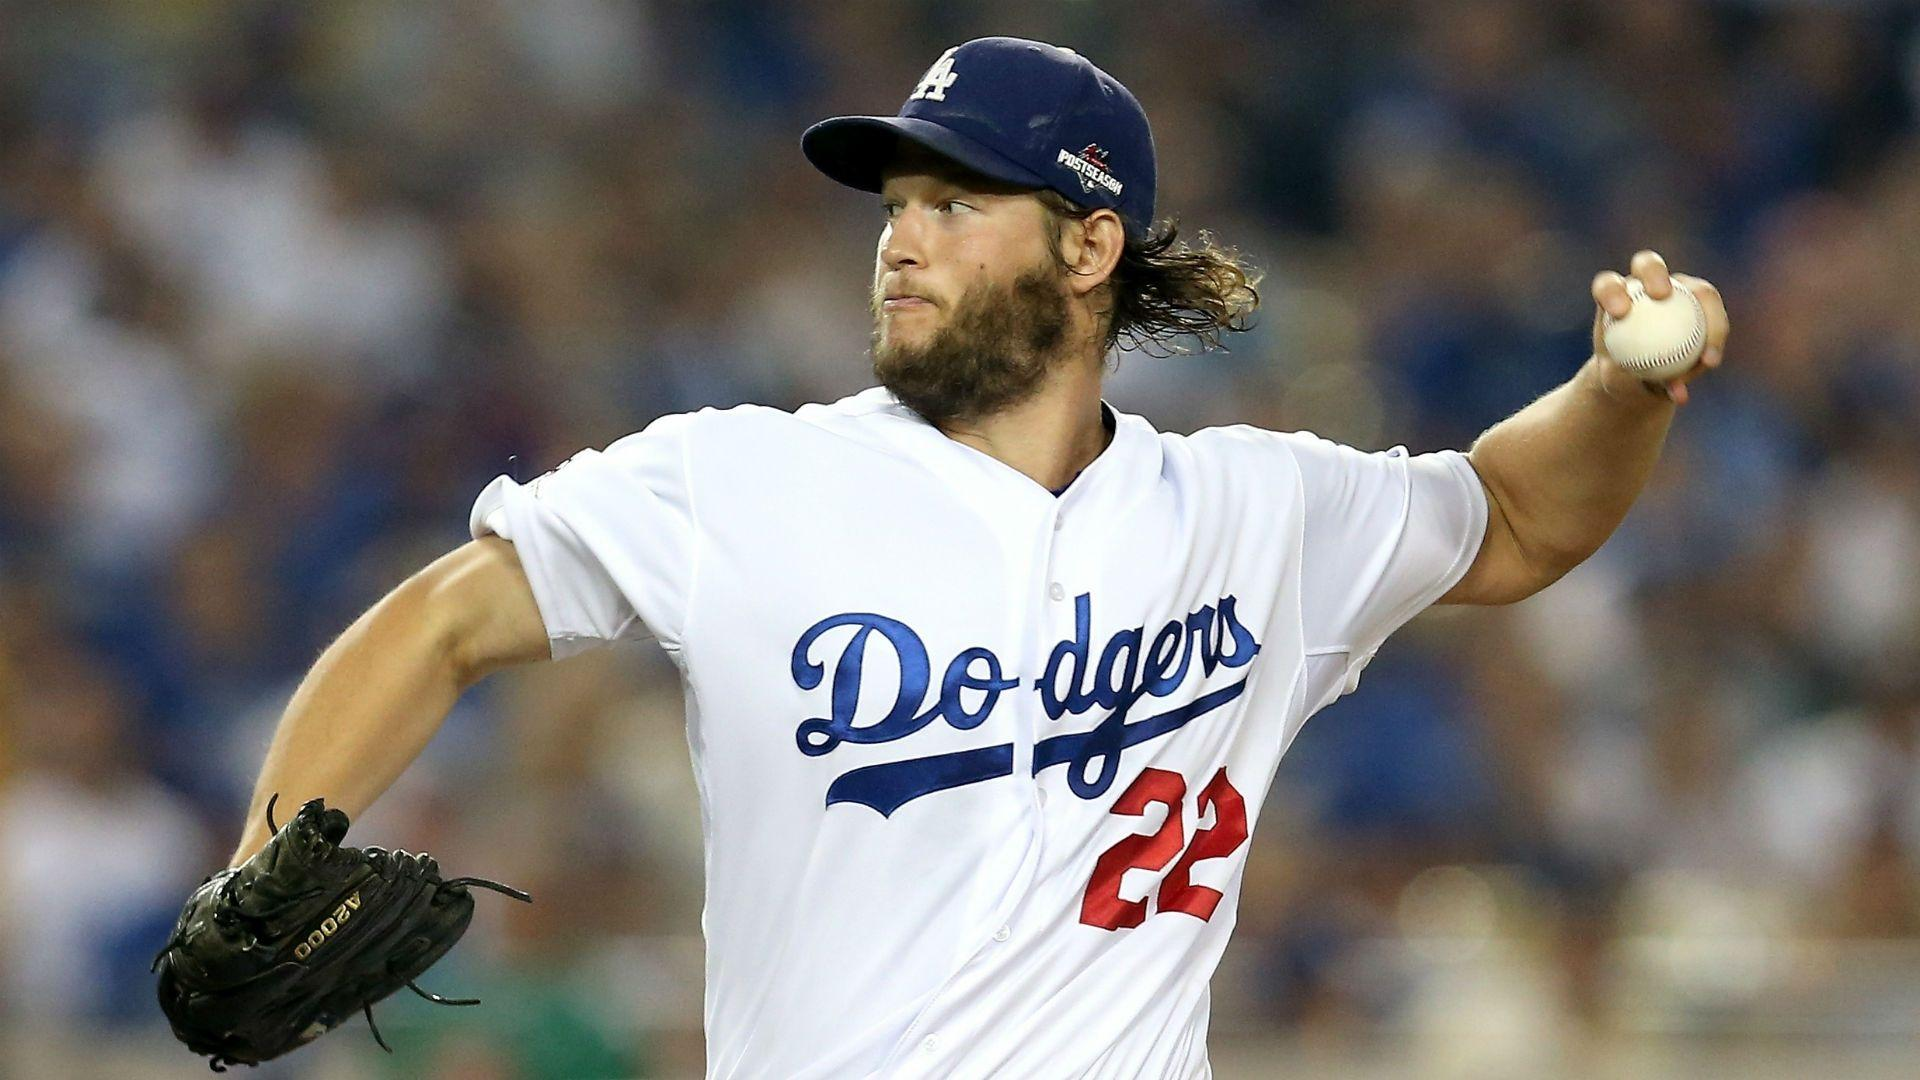 MLB playoffs 2015: Clayton Kershaw, Jacob deGrom make postseason